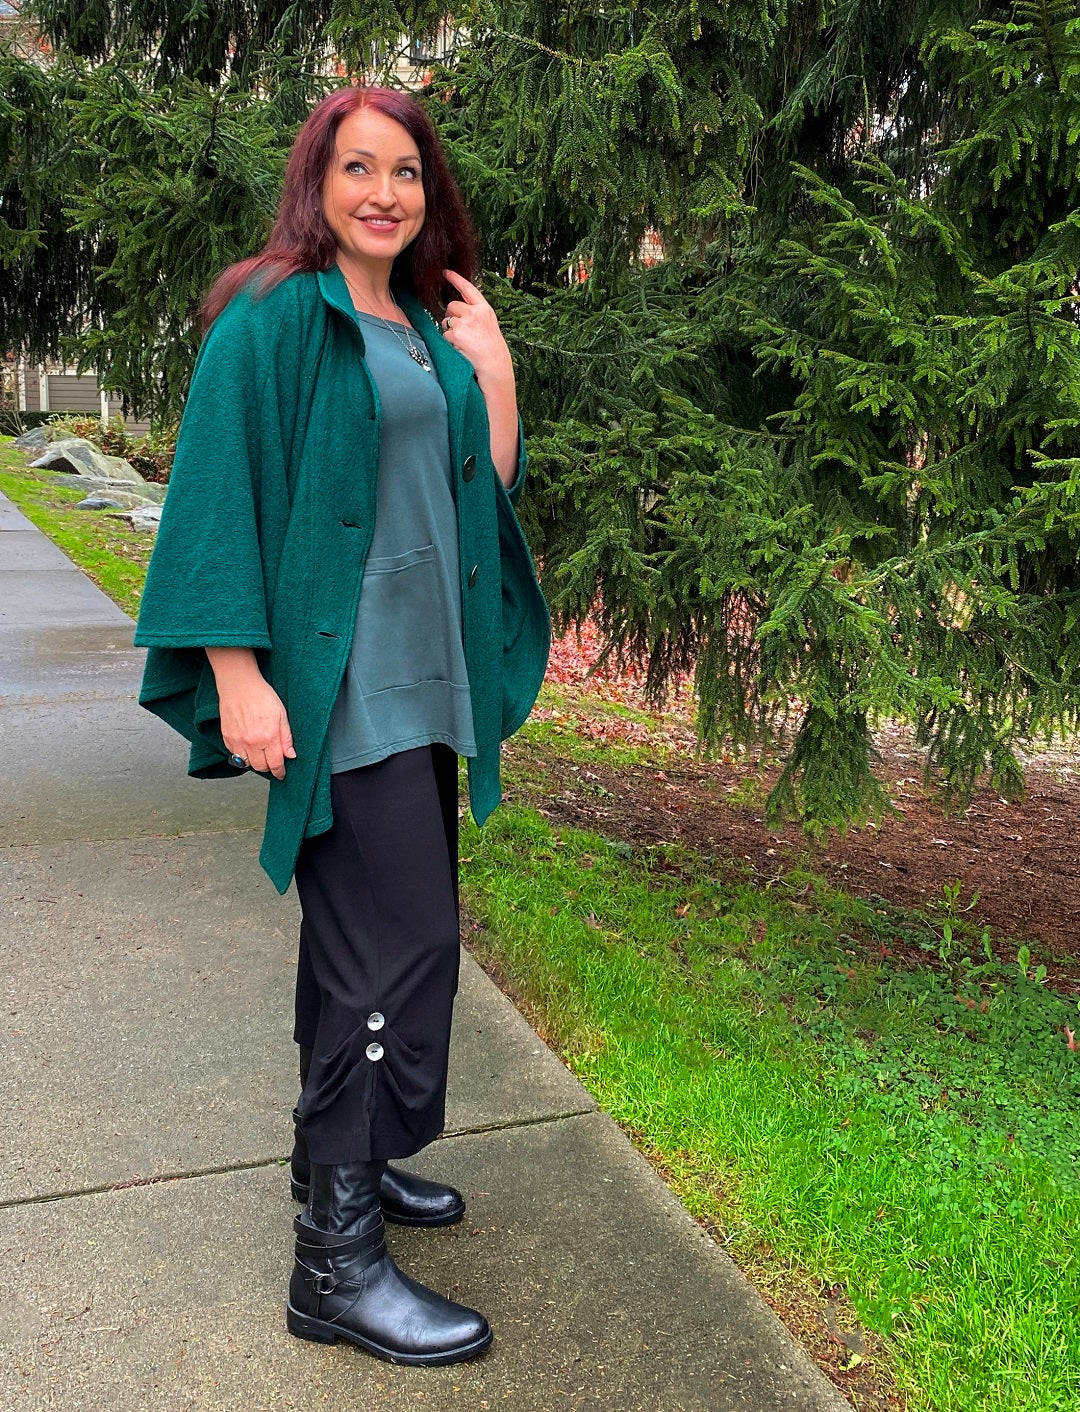 model wears a Diane Kennedy outfit of the Evergreen Cape over a Pine Tempo Tunic and Black Pier Pants